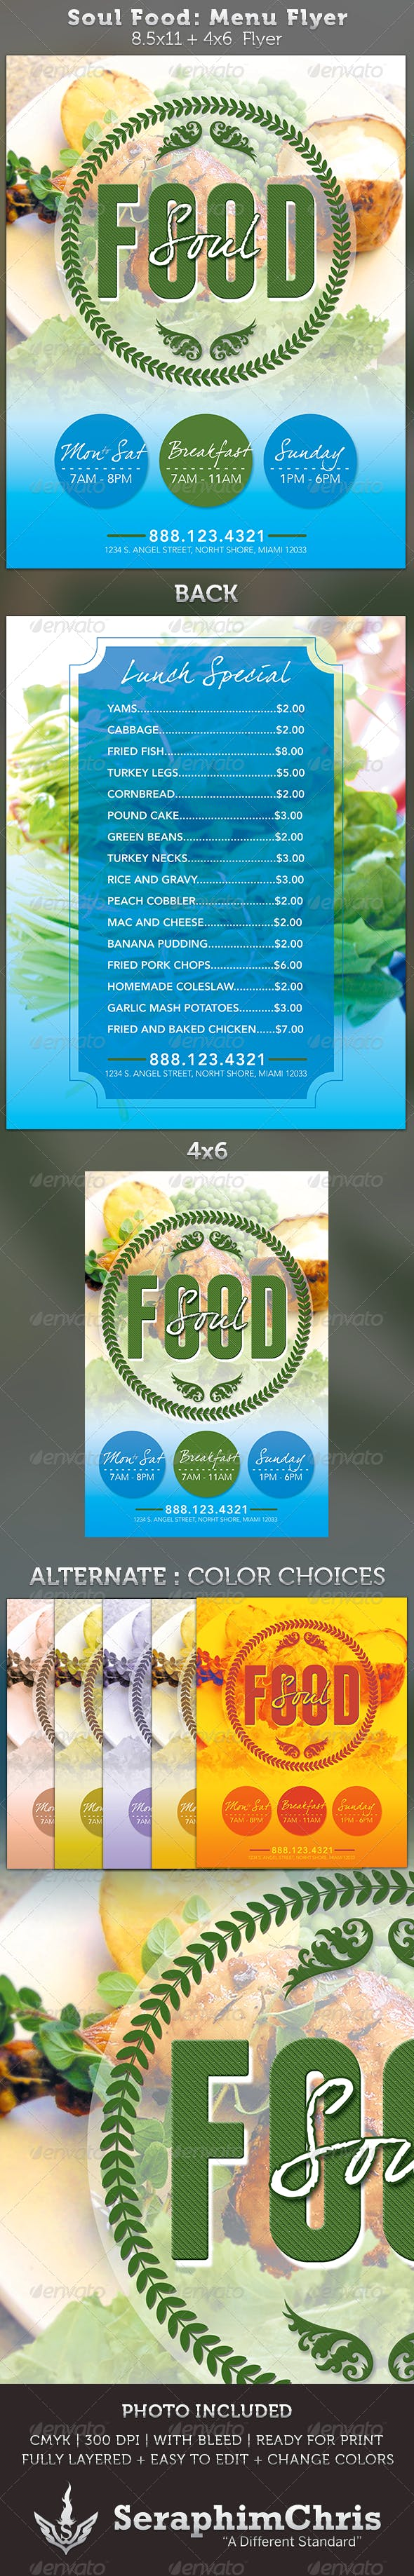 soul food menu flyer template by seraphimchris graphicriver